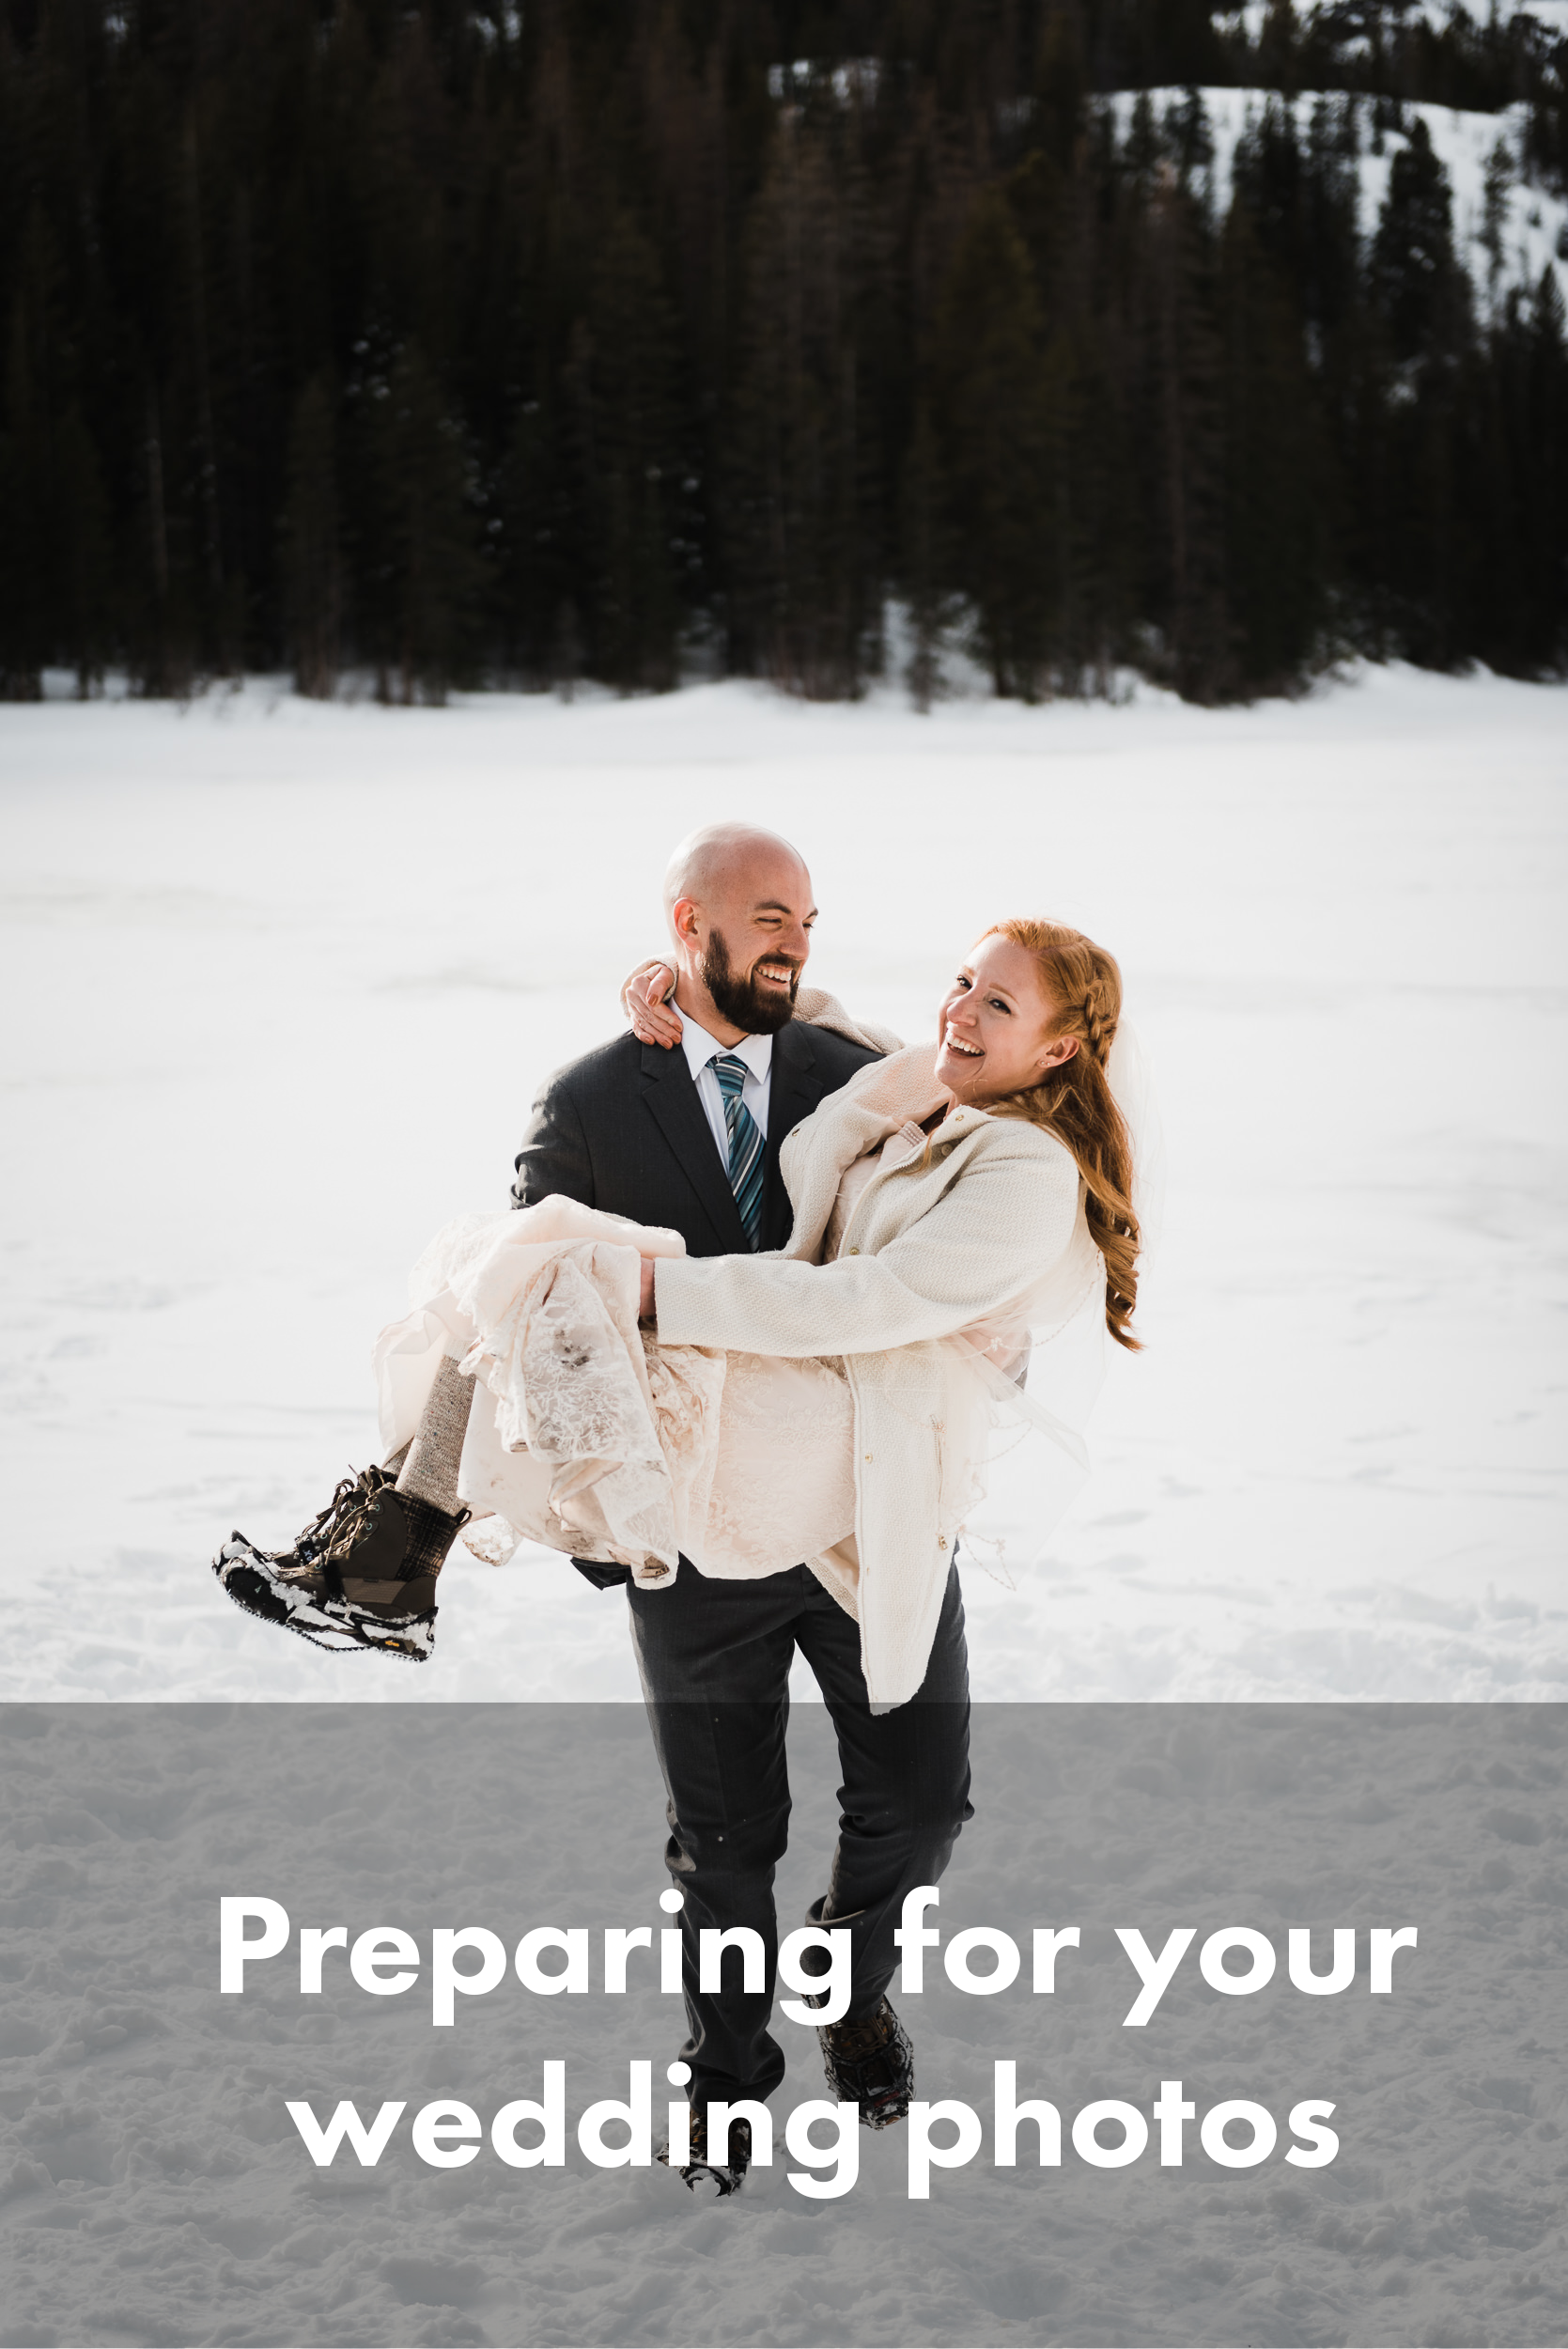 A groom is carrying his bride, standing on a frozen lake in Colorado. The groom's wearing a suit with hiking boots, traction cleats. The bride is wearing a dress with hiking boots and cleats, with a warm coat on. They're both laughing, and the groom's walking with her in his arms. Tall trees are in the background.